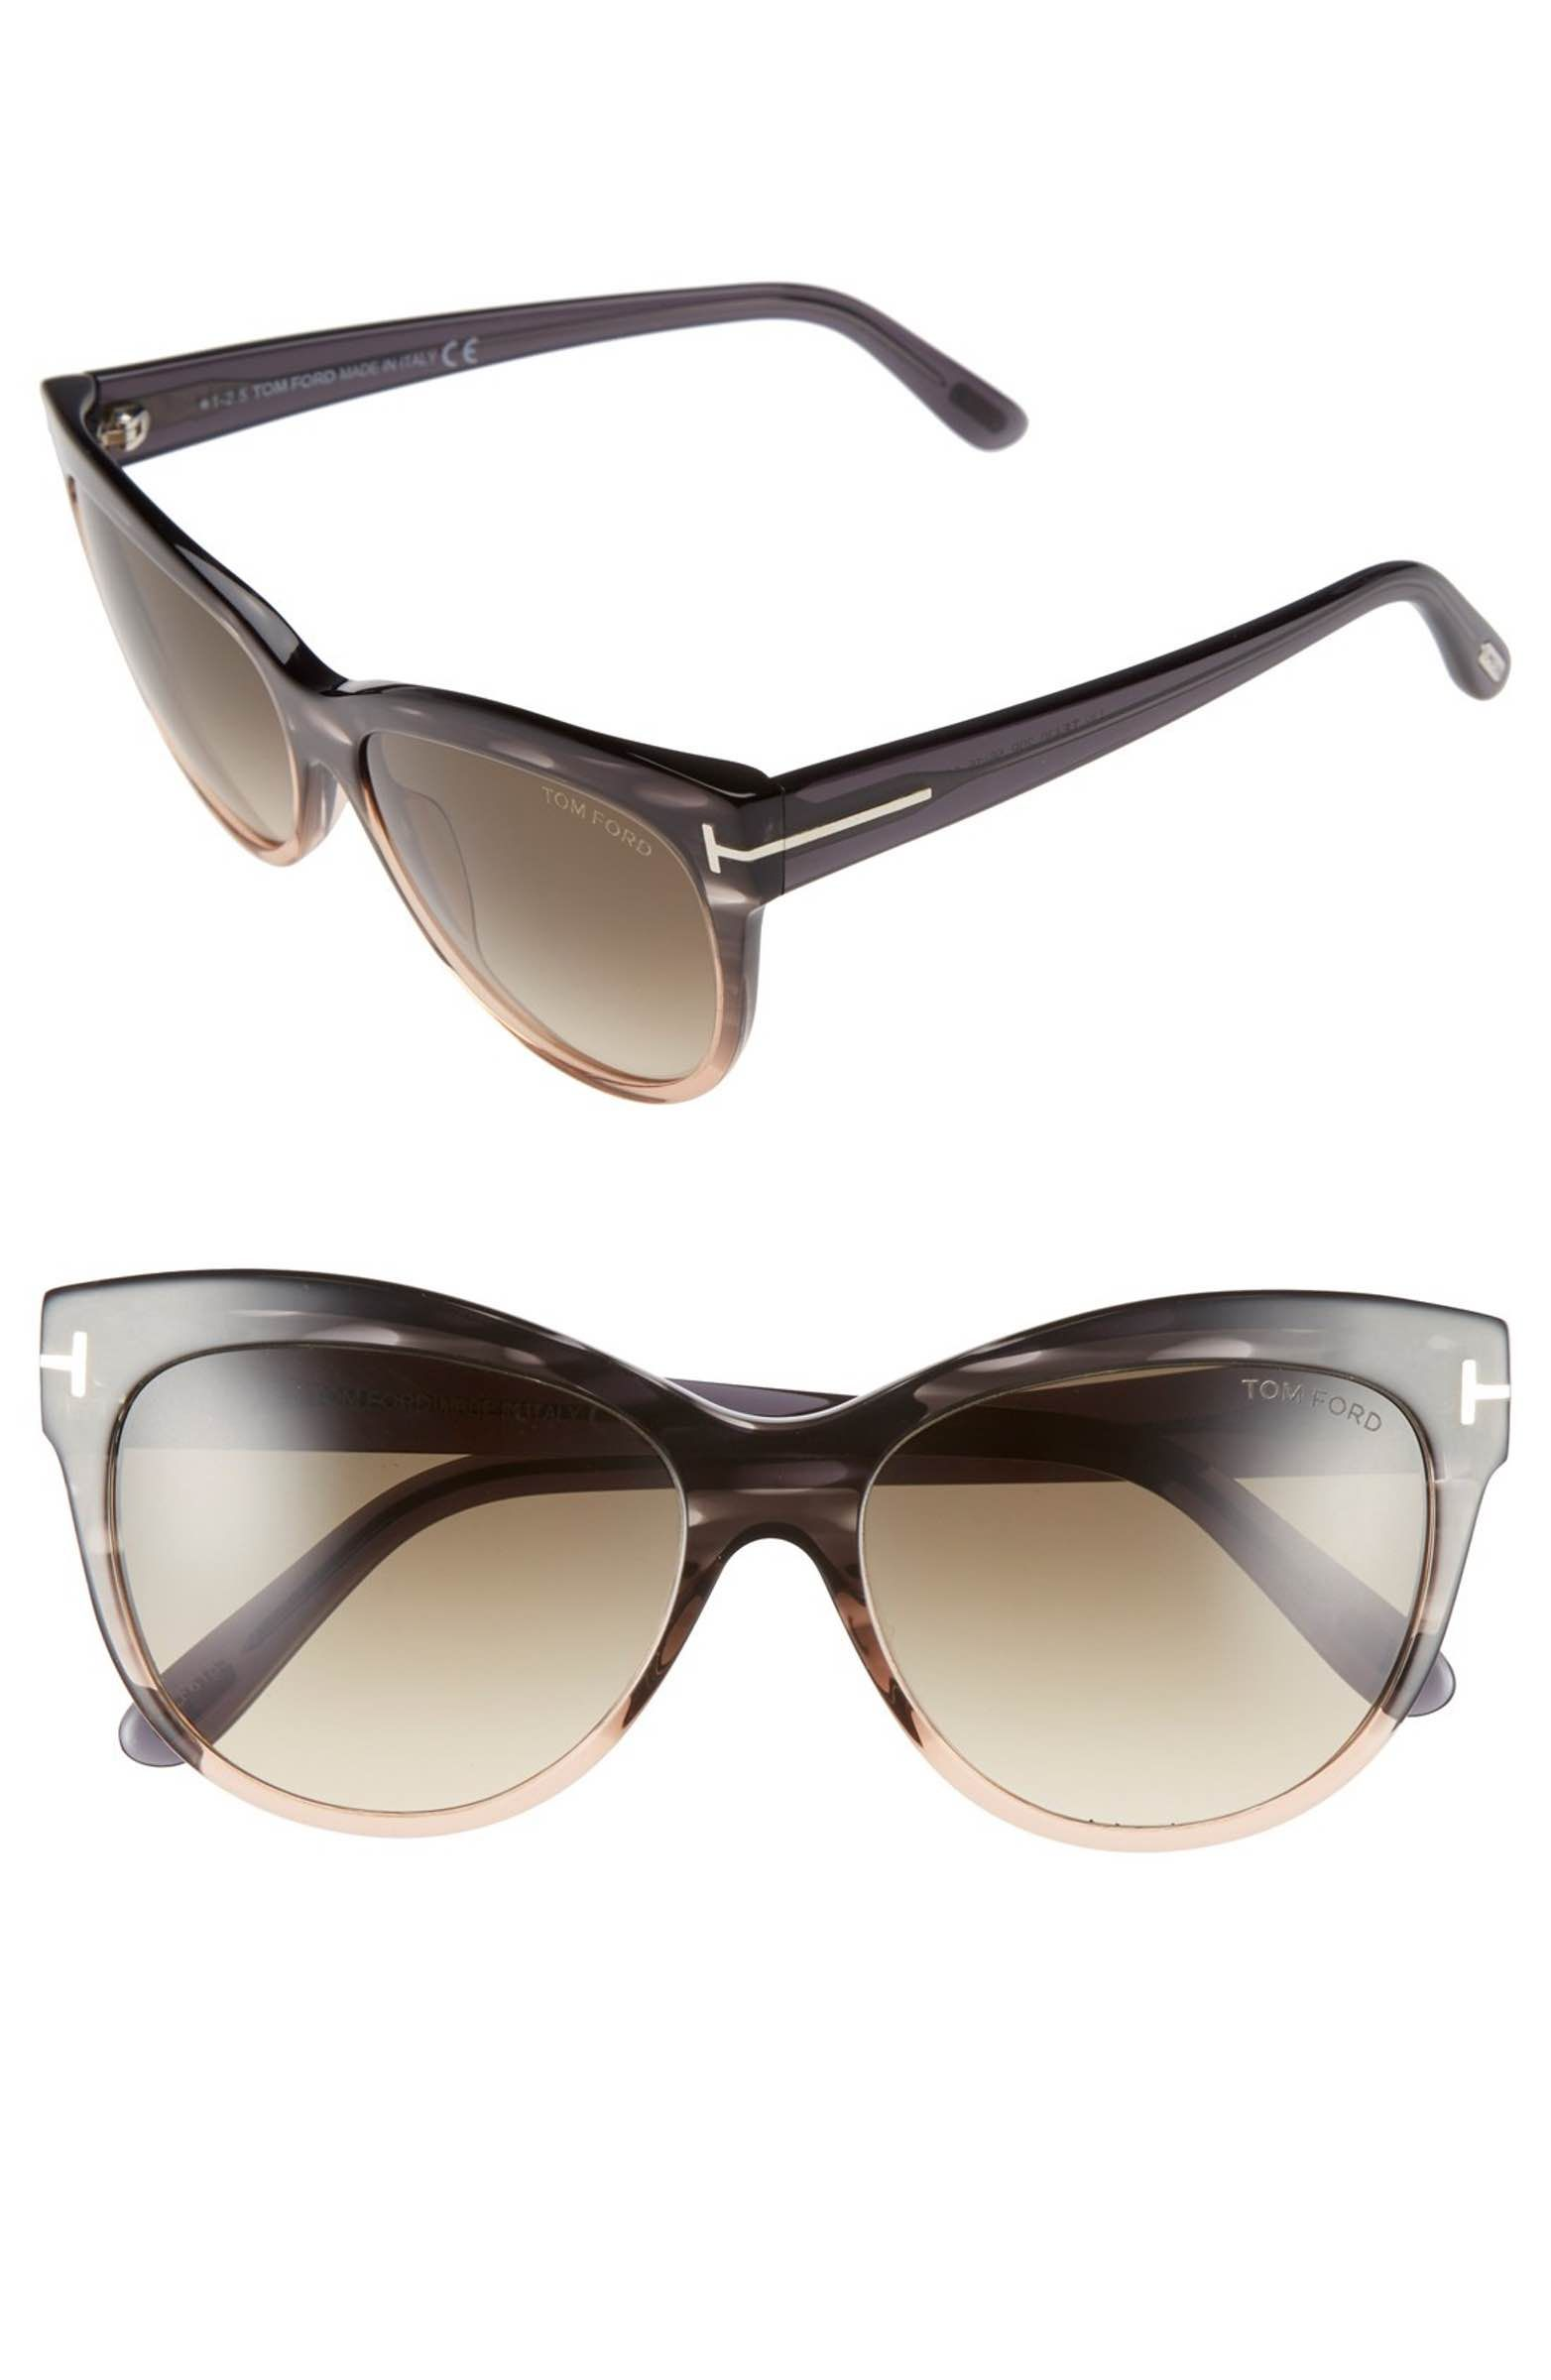 2f0489996ea0a Main Image - Tom Ford  Lily  56mm Cat Eye Sunglasses